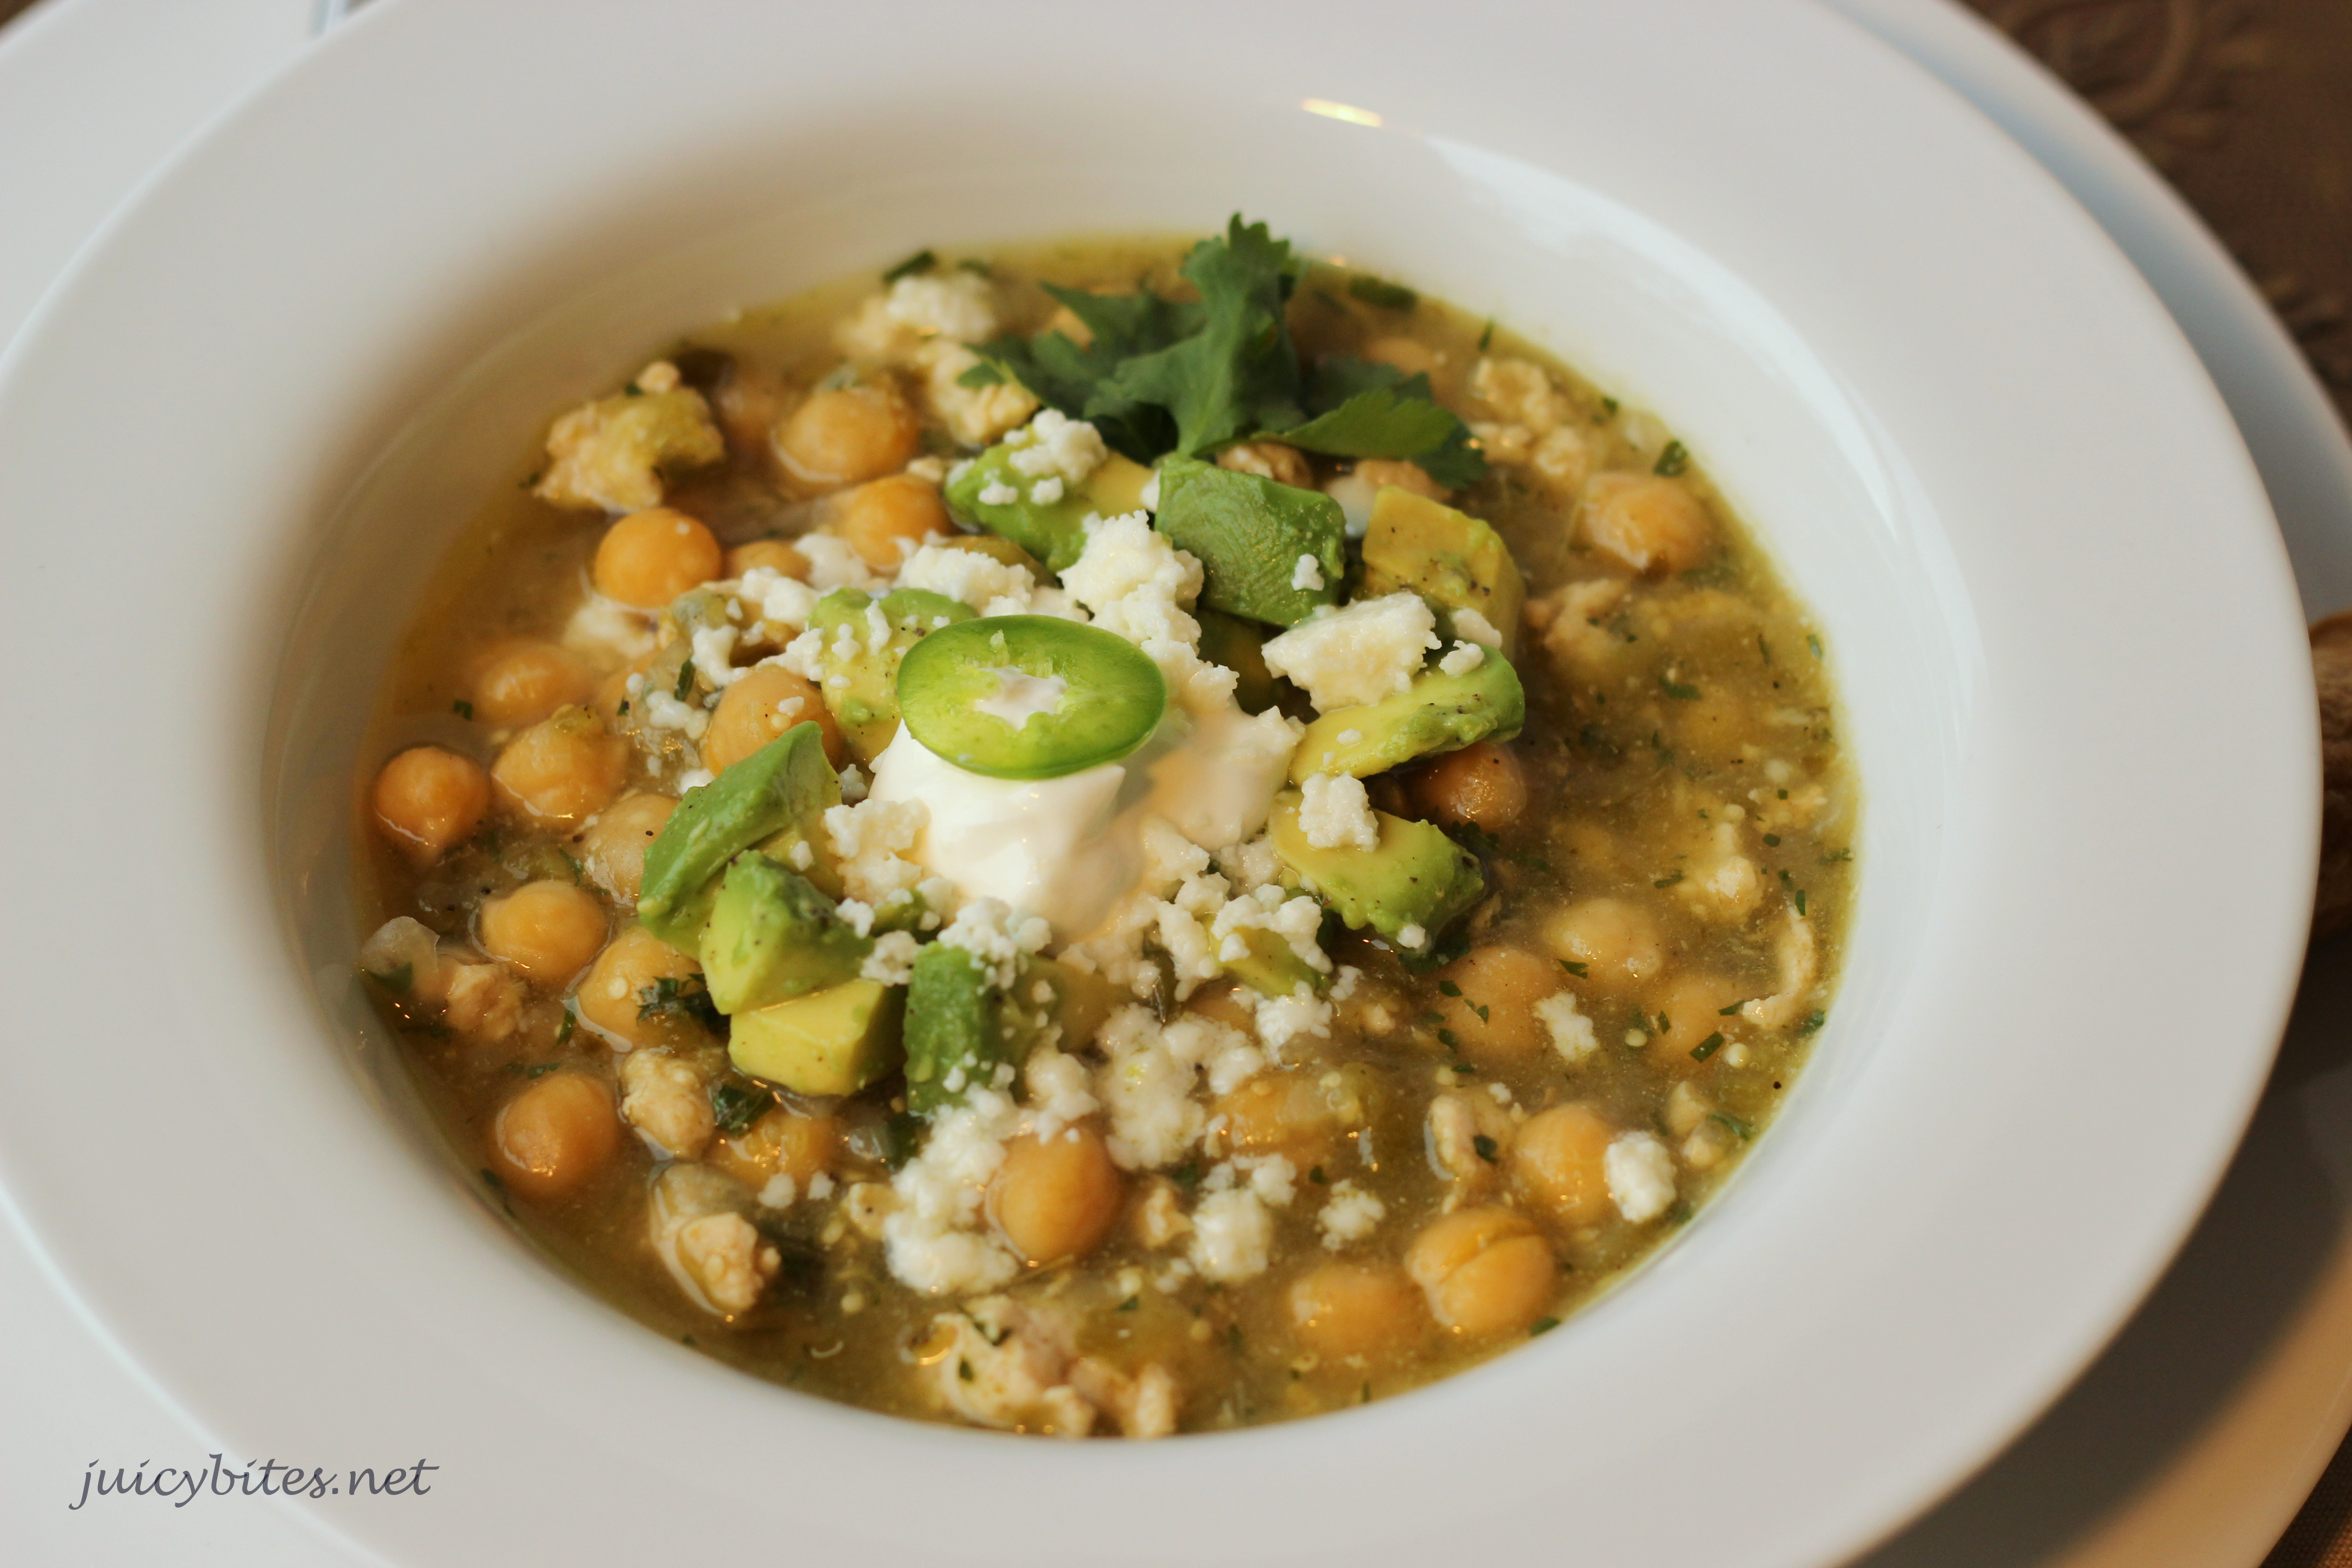 Green Chili with Chicken and Garbanzo Beans